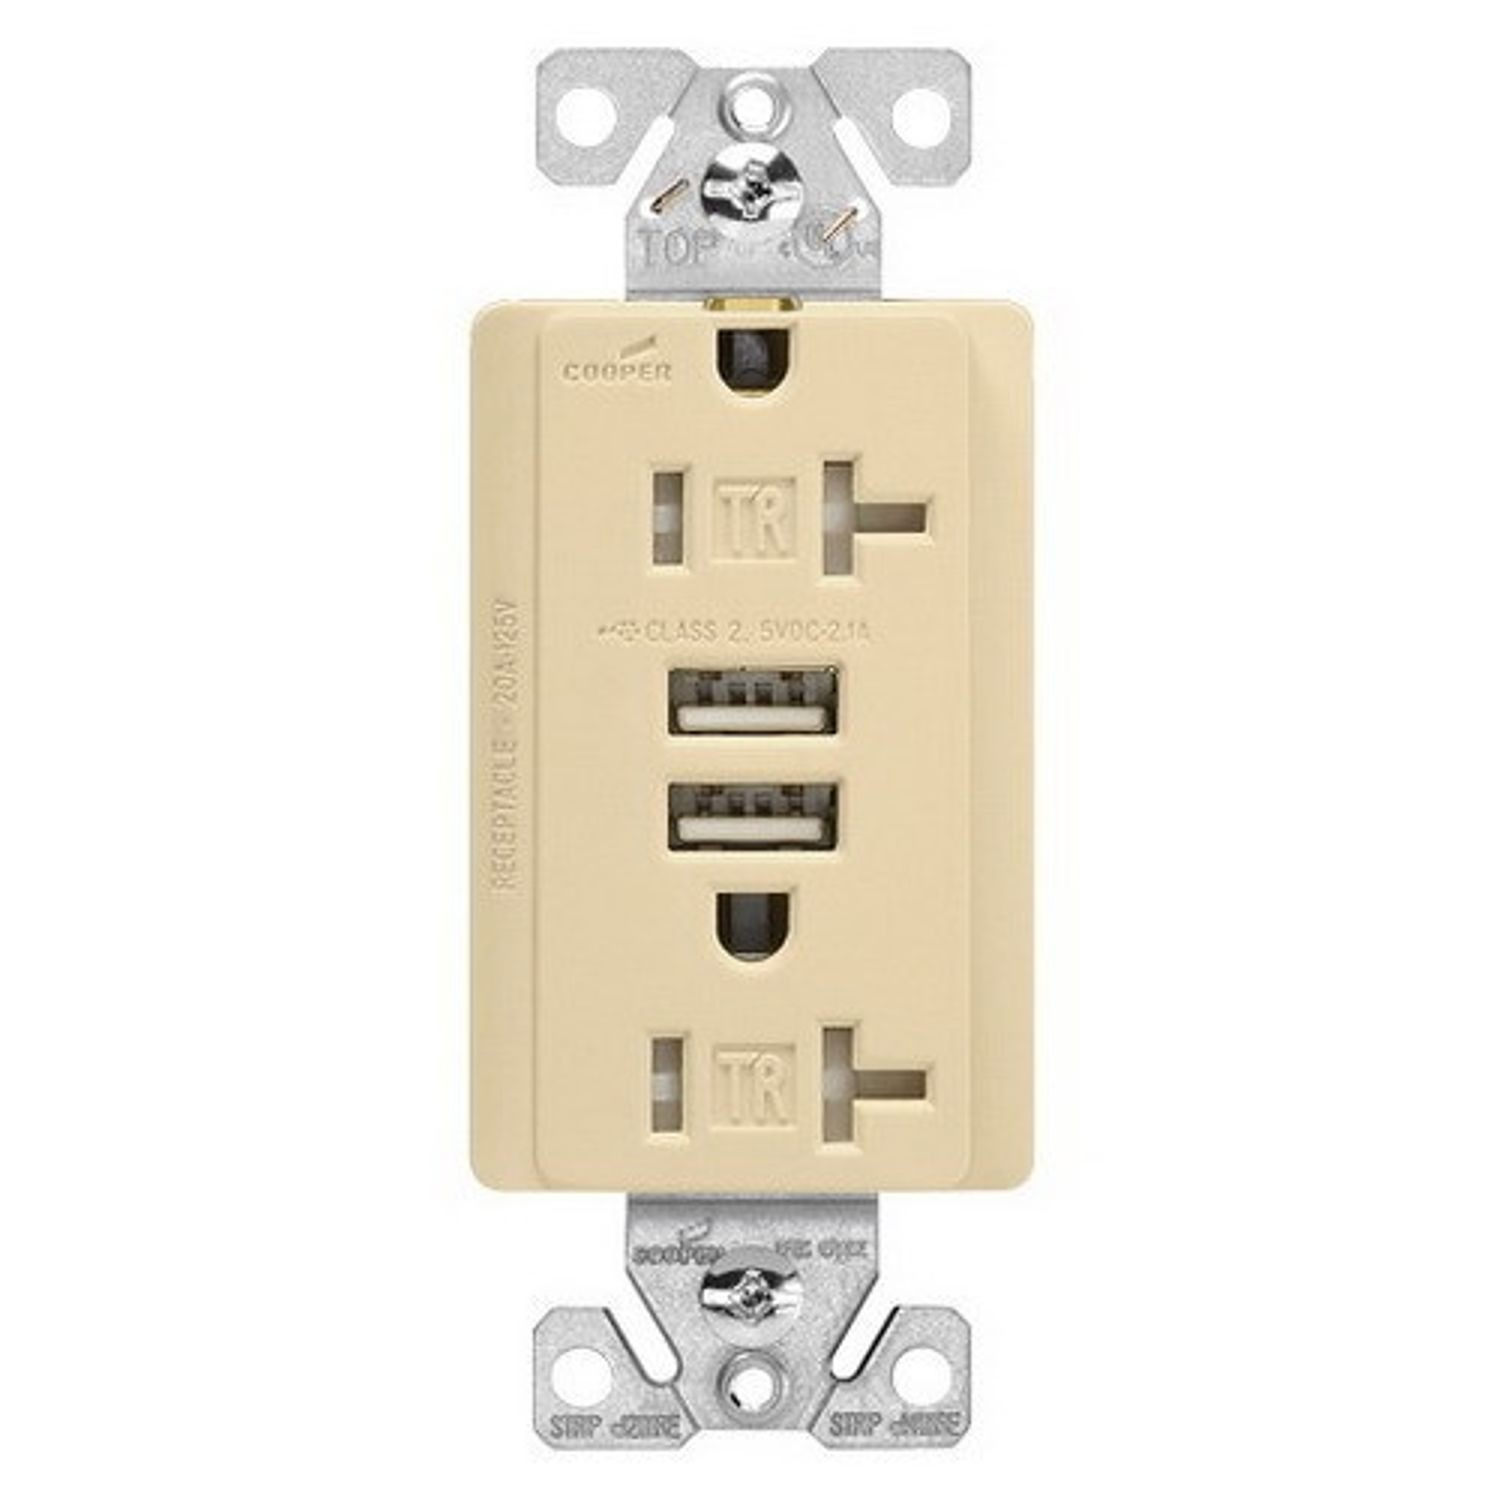 Cooper Wiring Arrow Hart Tr7746v Box Duplex Receptacle And Usb Charger 125 Vac 20 A 5 Vdc 21 2 Poles 3 Wires